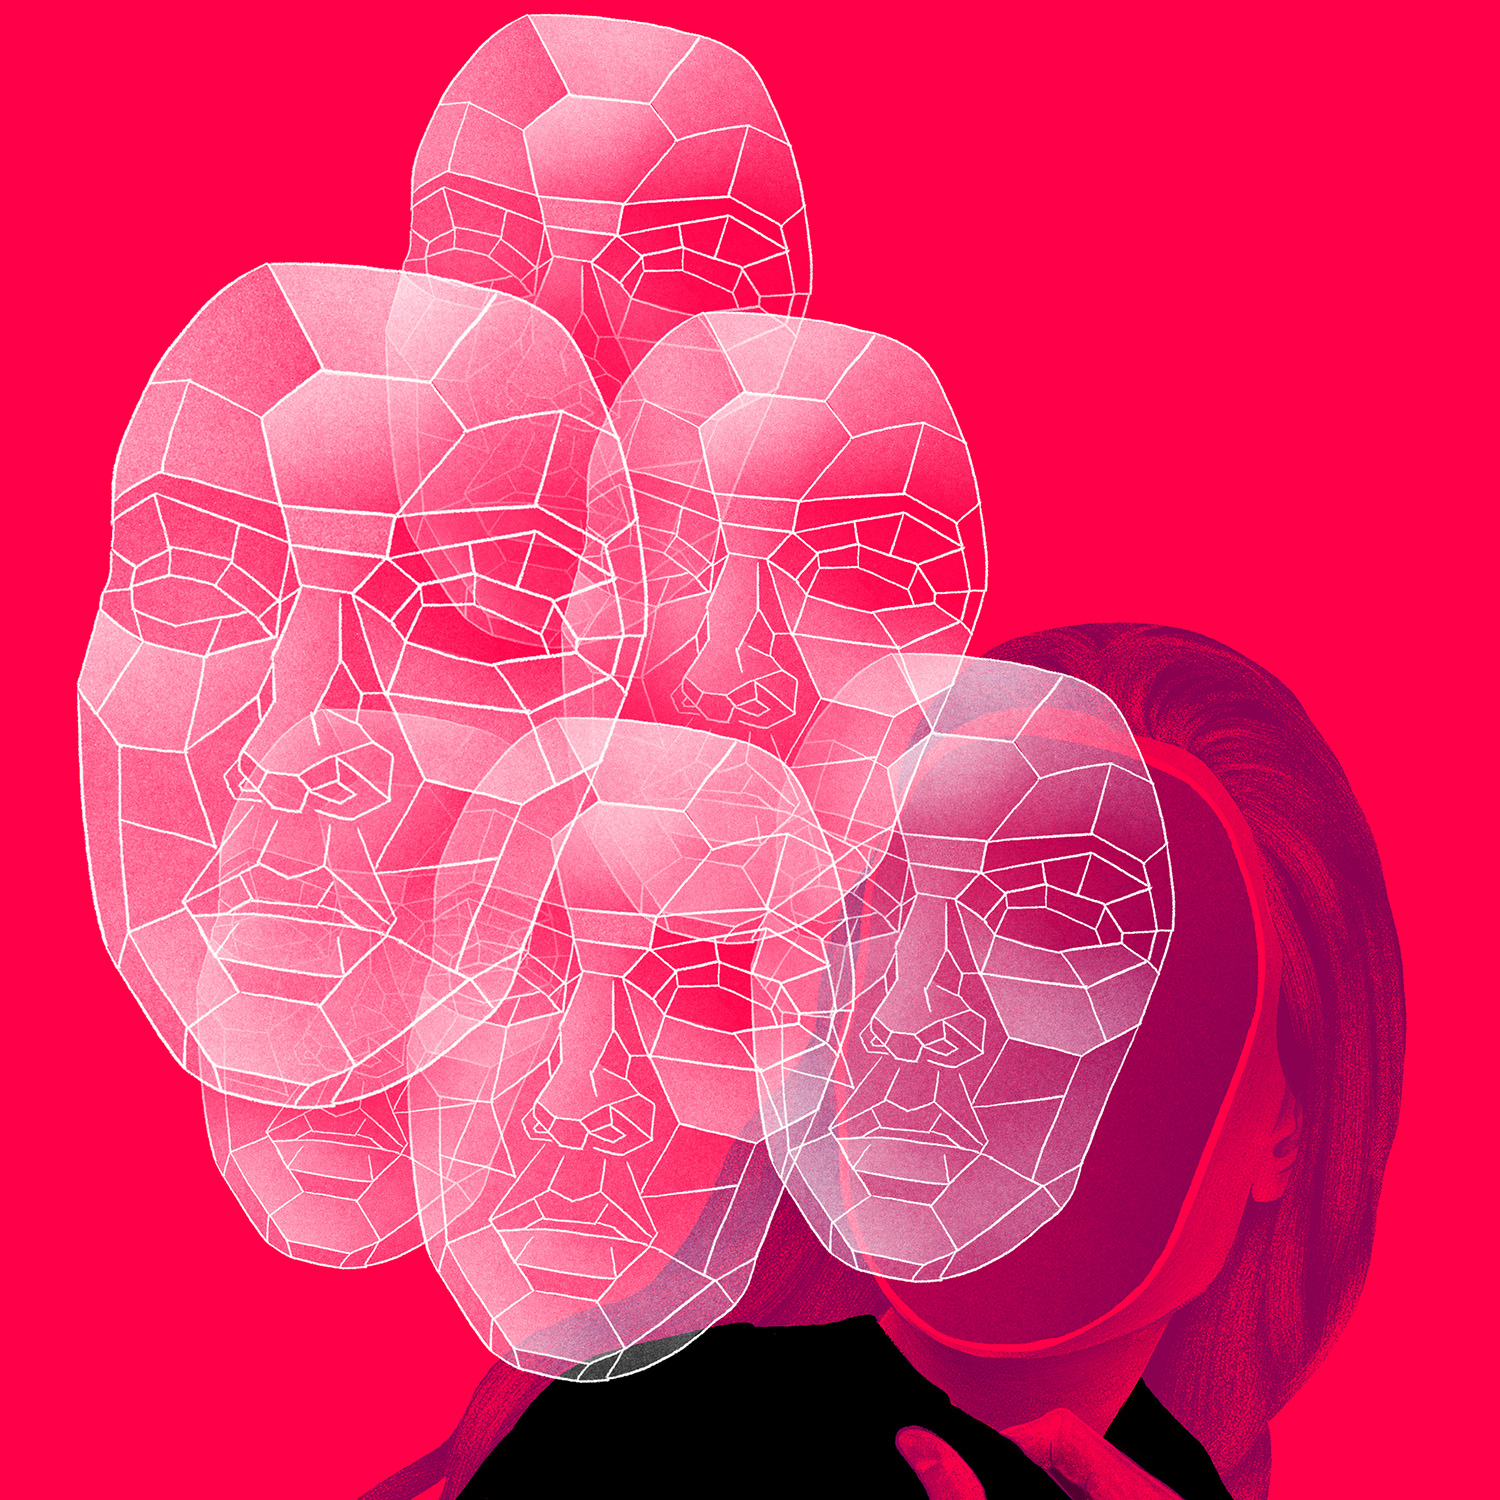 Image in a red color motif of woman with many computer-generated abstract masks floating and obscuring her face.